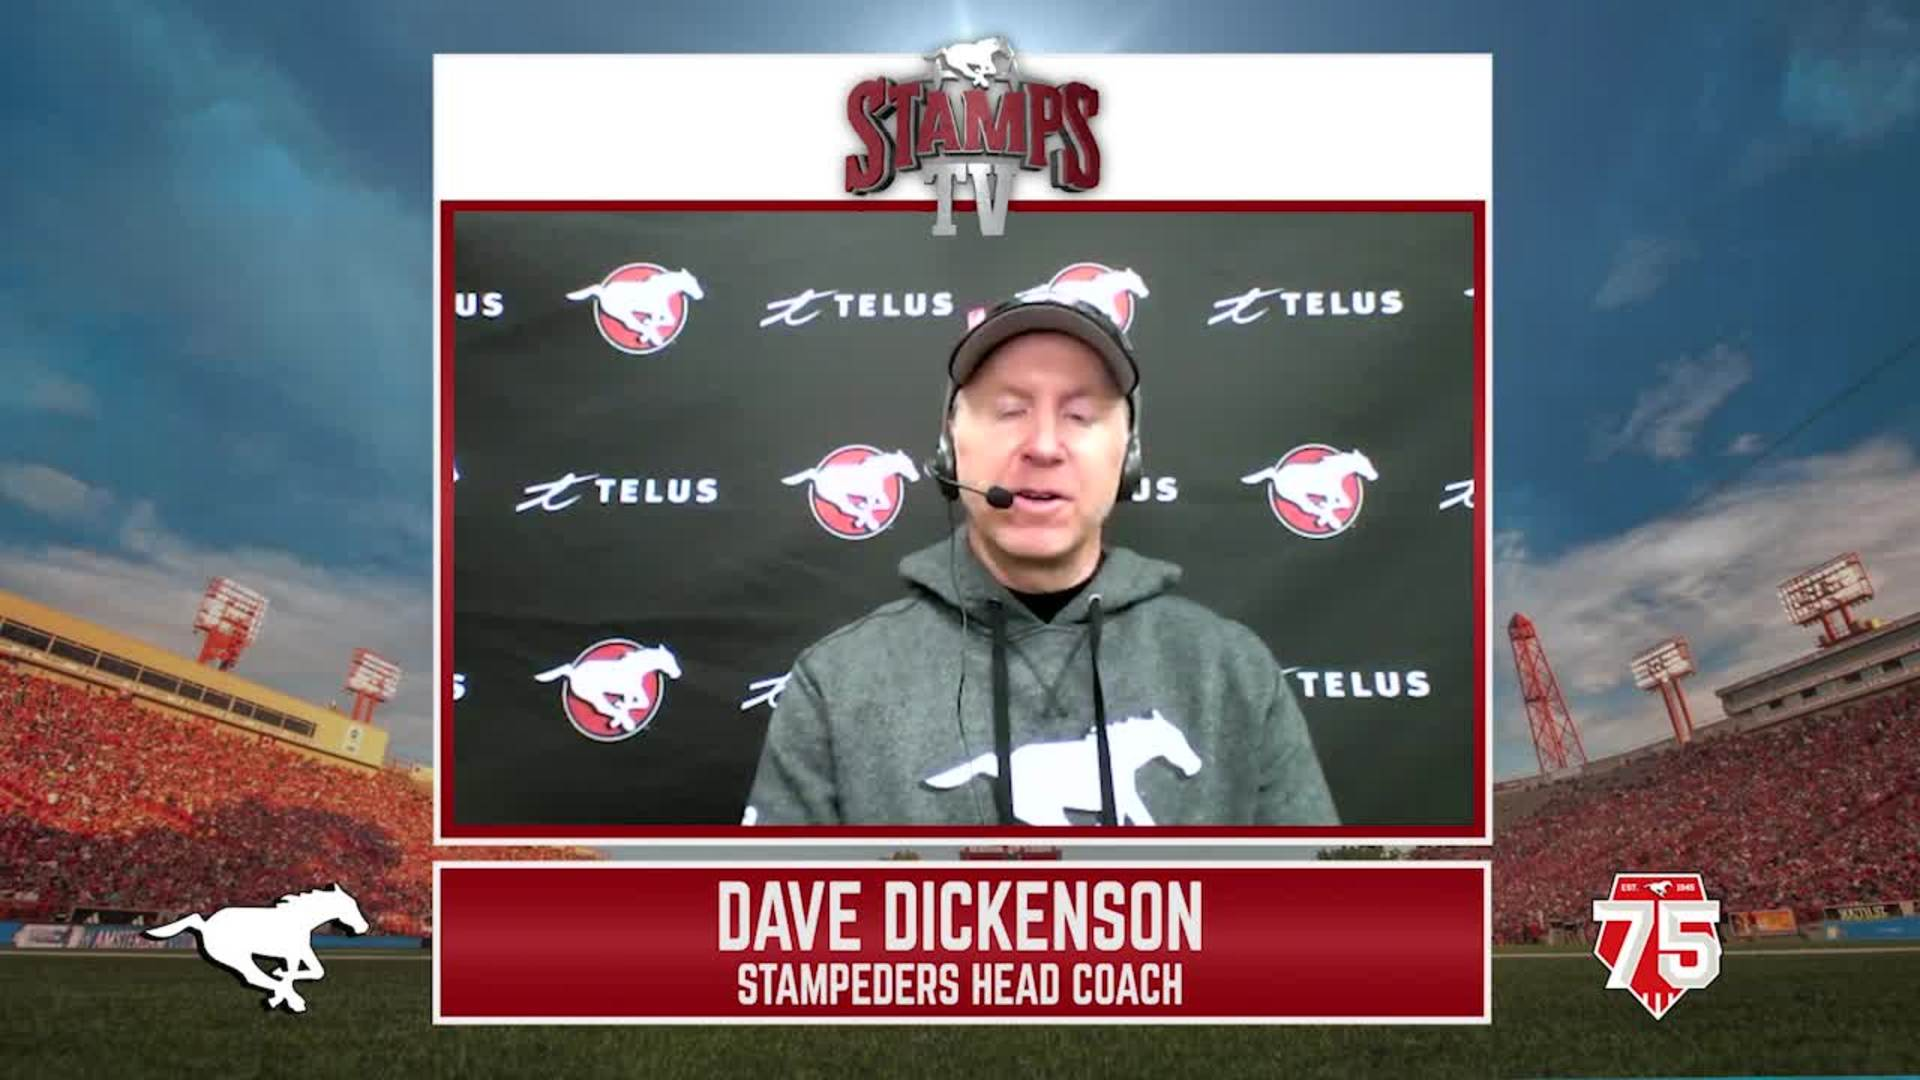 Post-Game Dave Dickenson